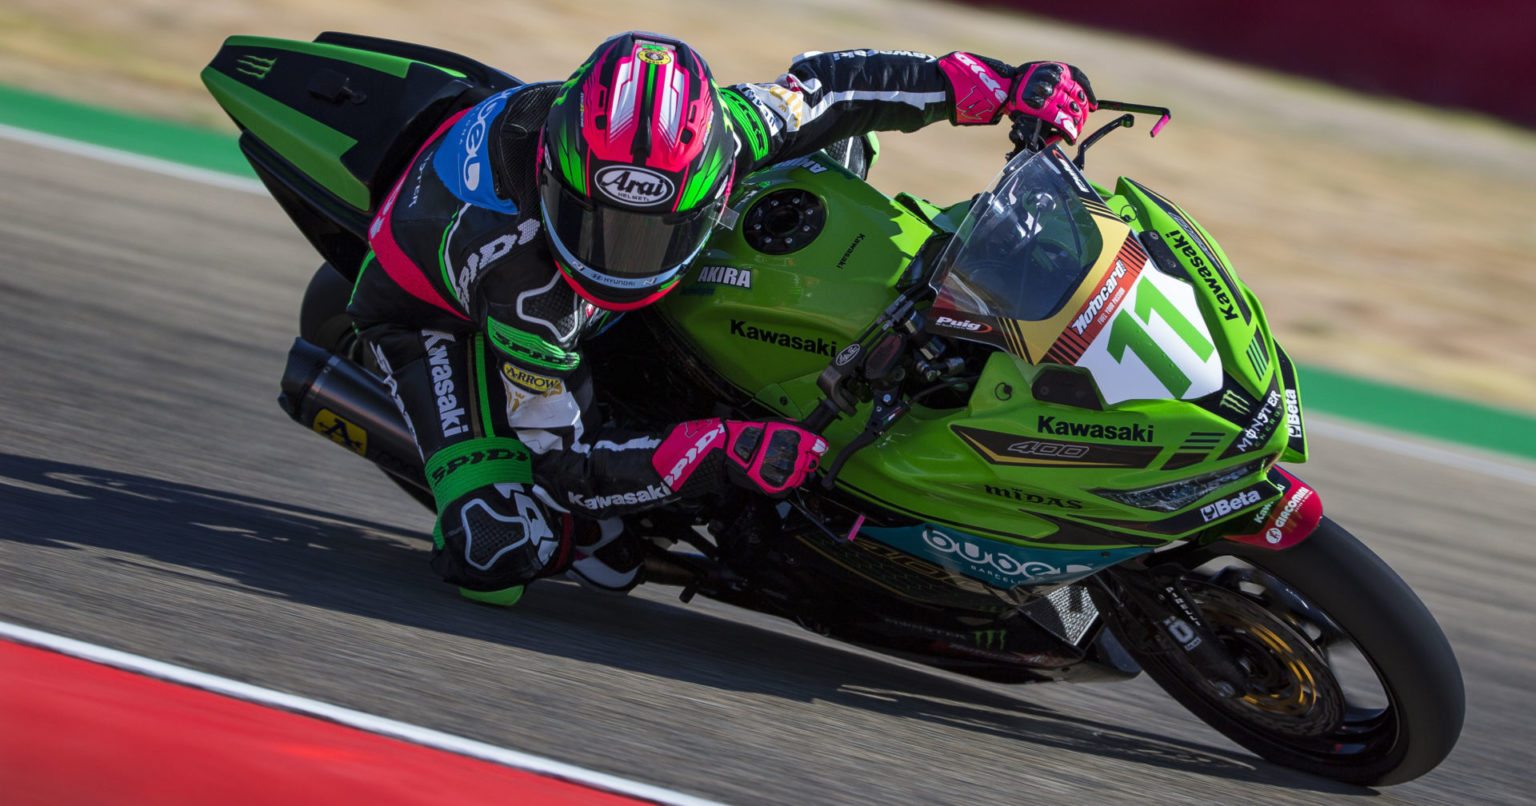 World Supersport 300: Ana Carrasco's Recovery